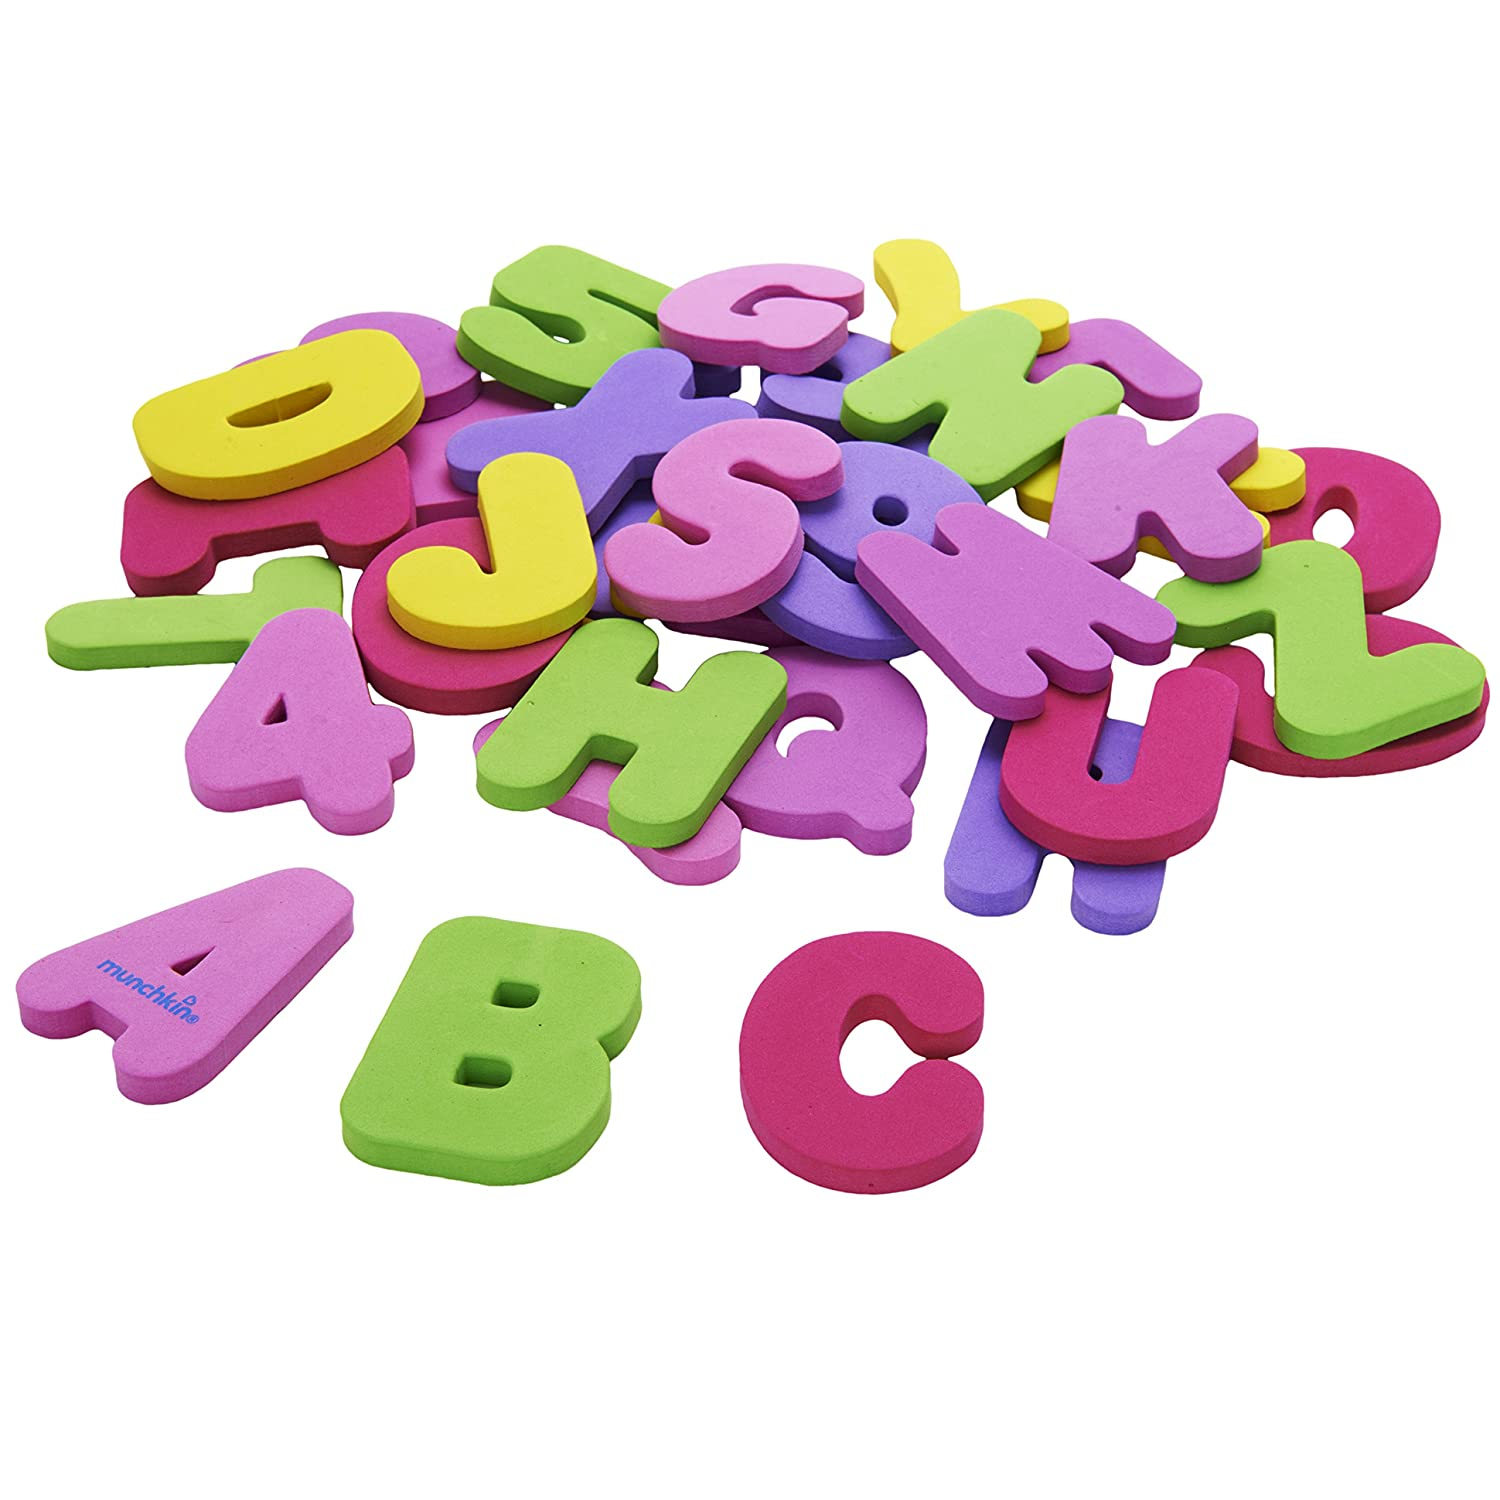 Amazon.com : Munchkin 36 Bath Letters and Numbers, Pastel : Bathtub ...